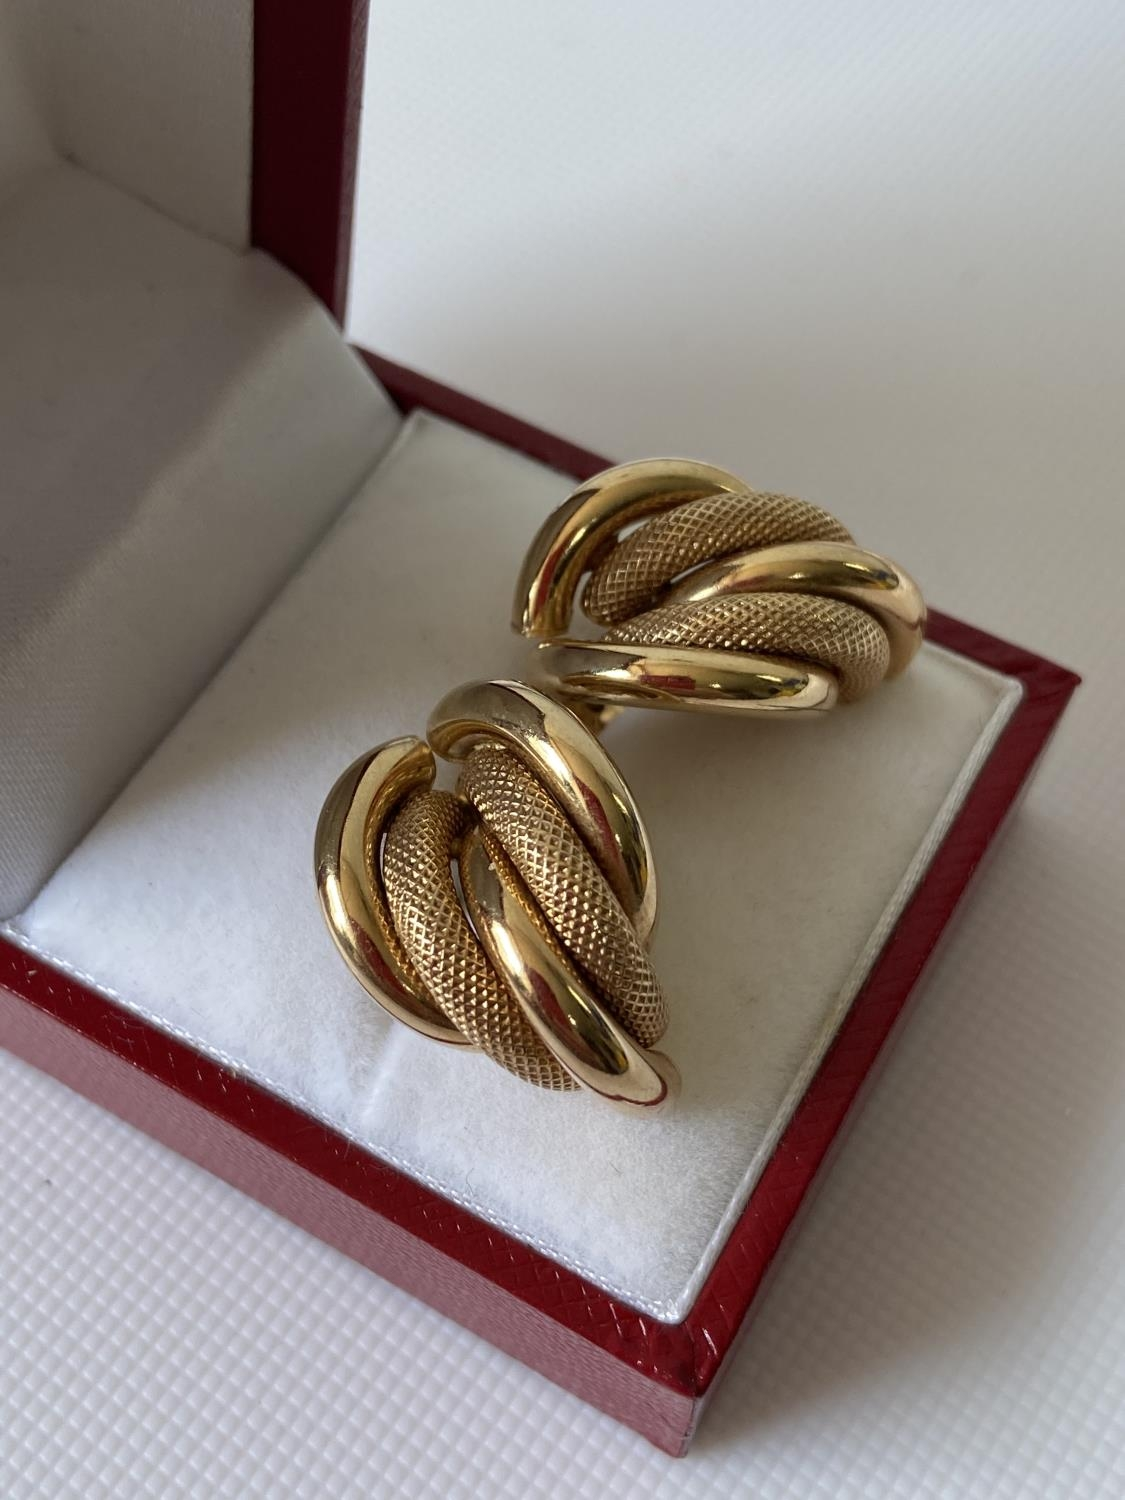 A pair of 9ct gold earrings [3.9g] - Image 4 of 6